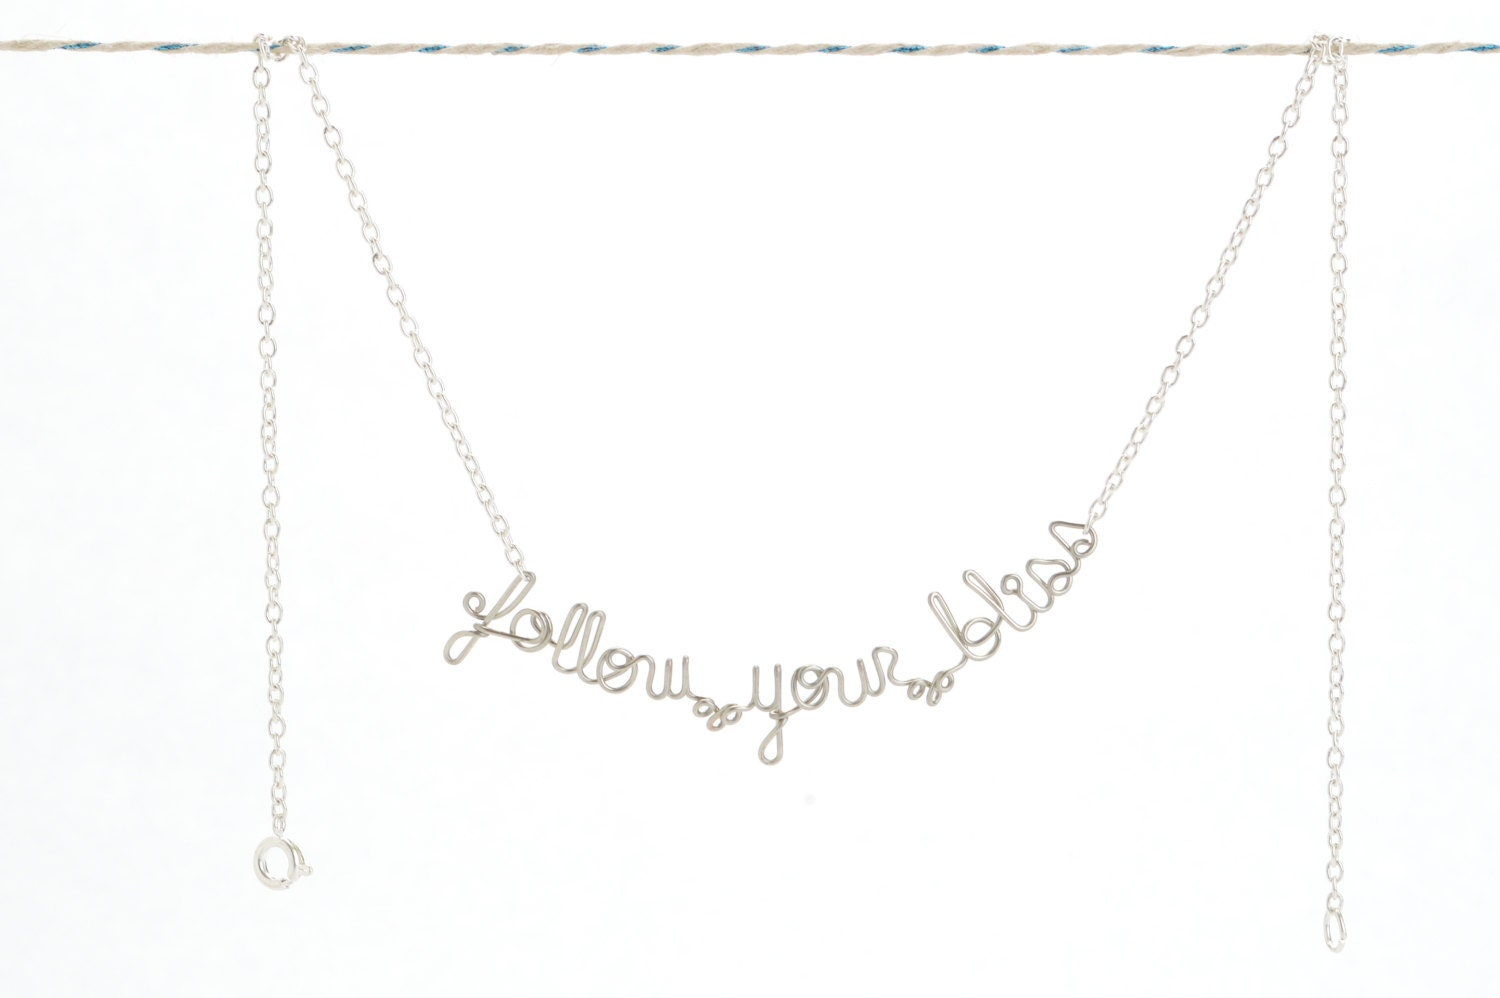 Follow Your Bliss Necklace - Follow Your Heart Jewelry - Inspirational Phrase - Boho Necklace